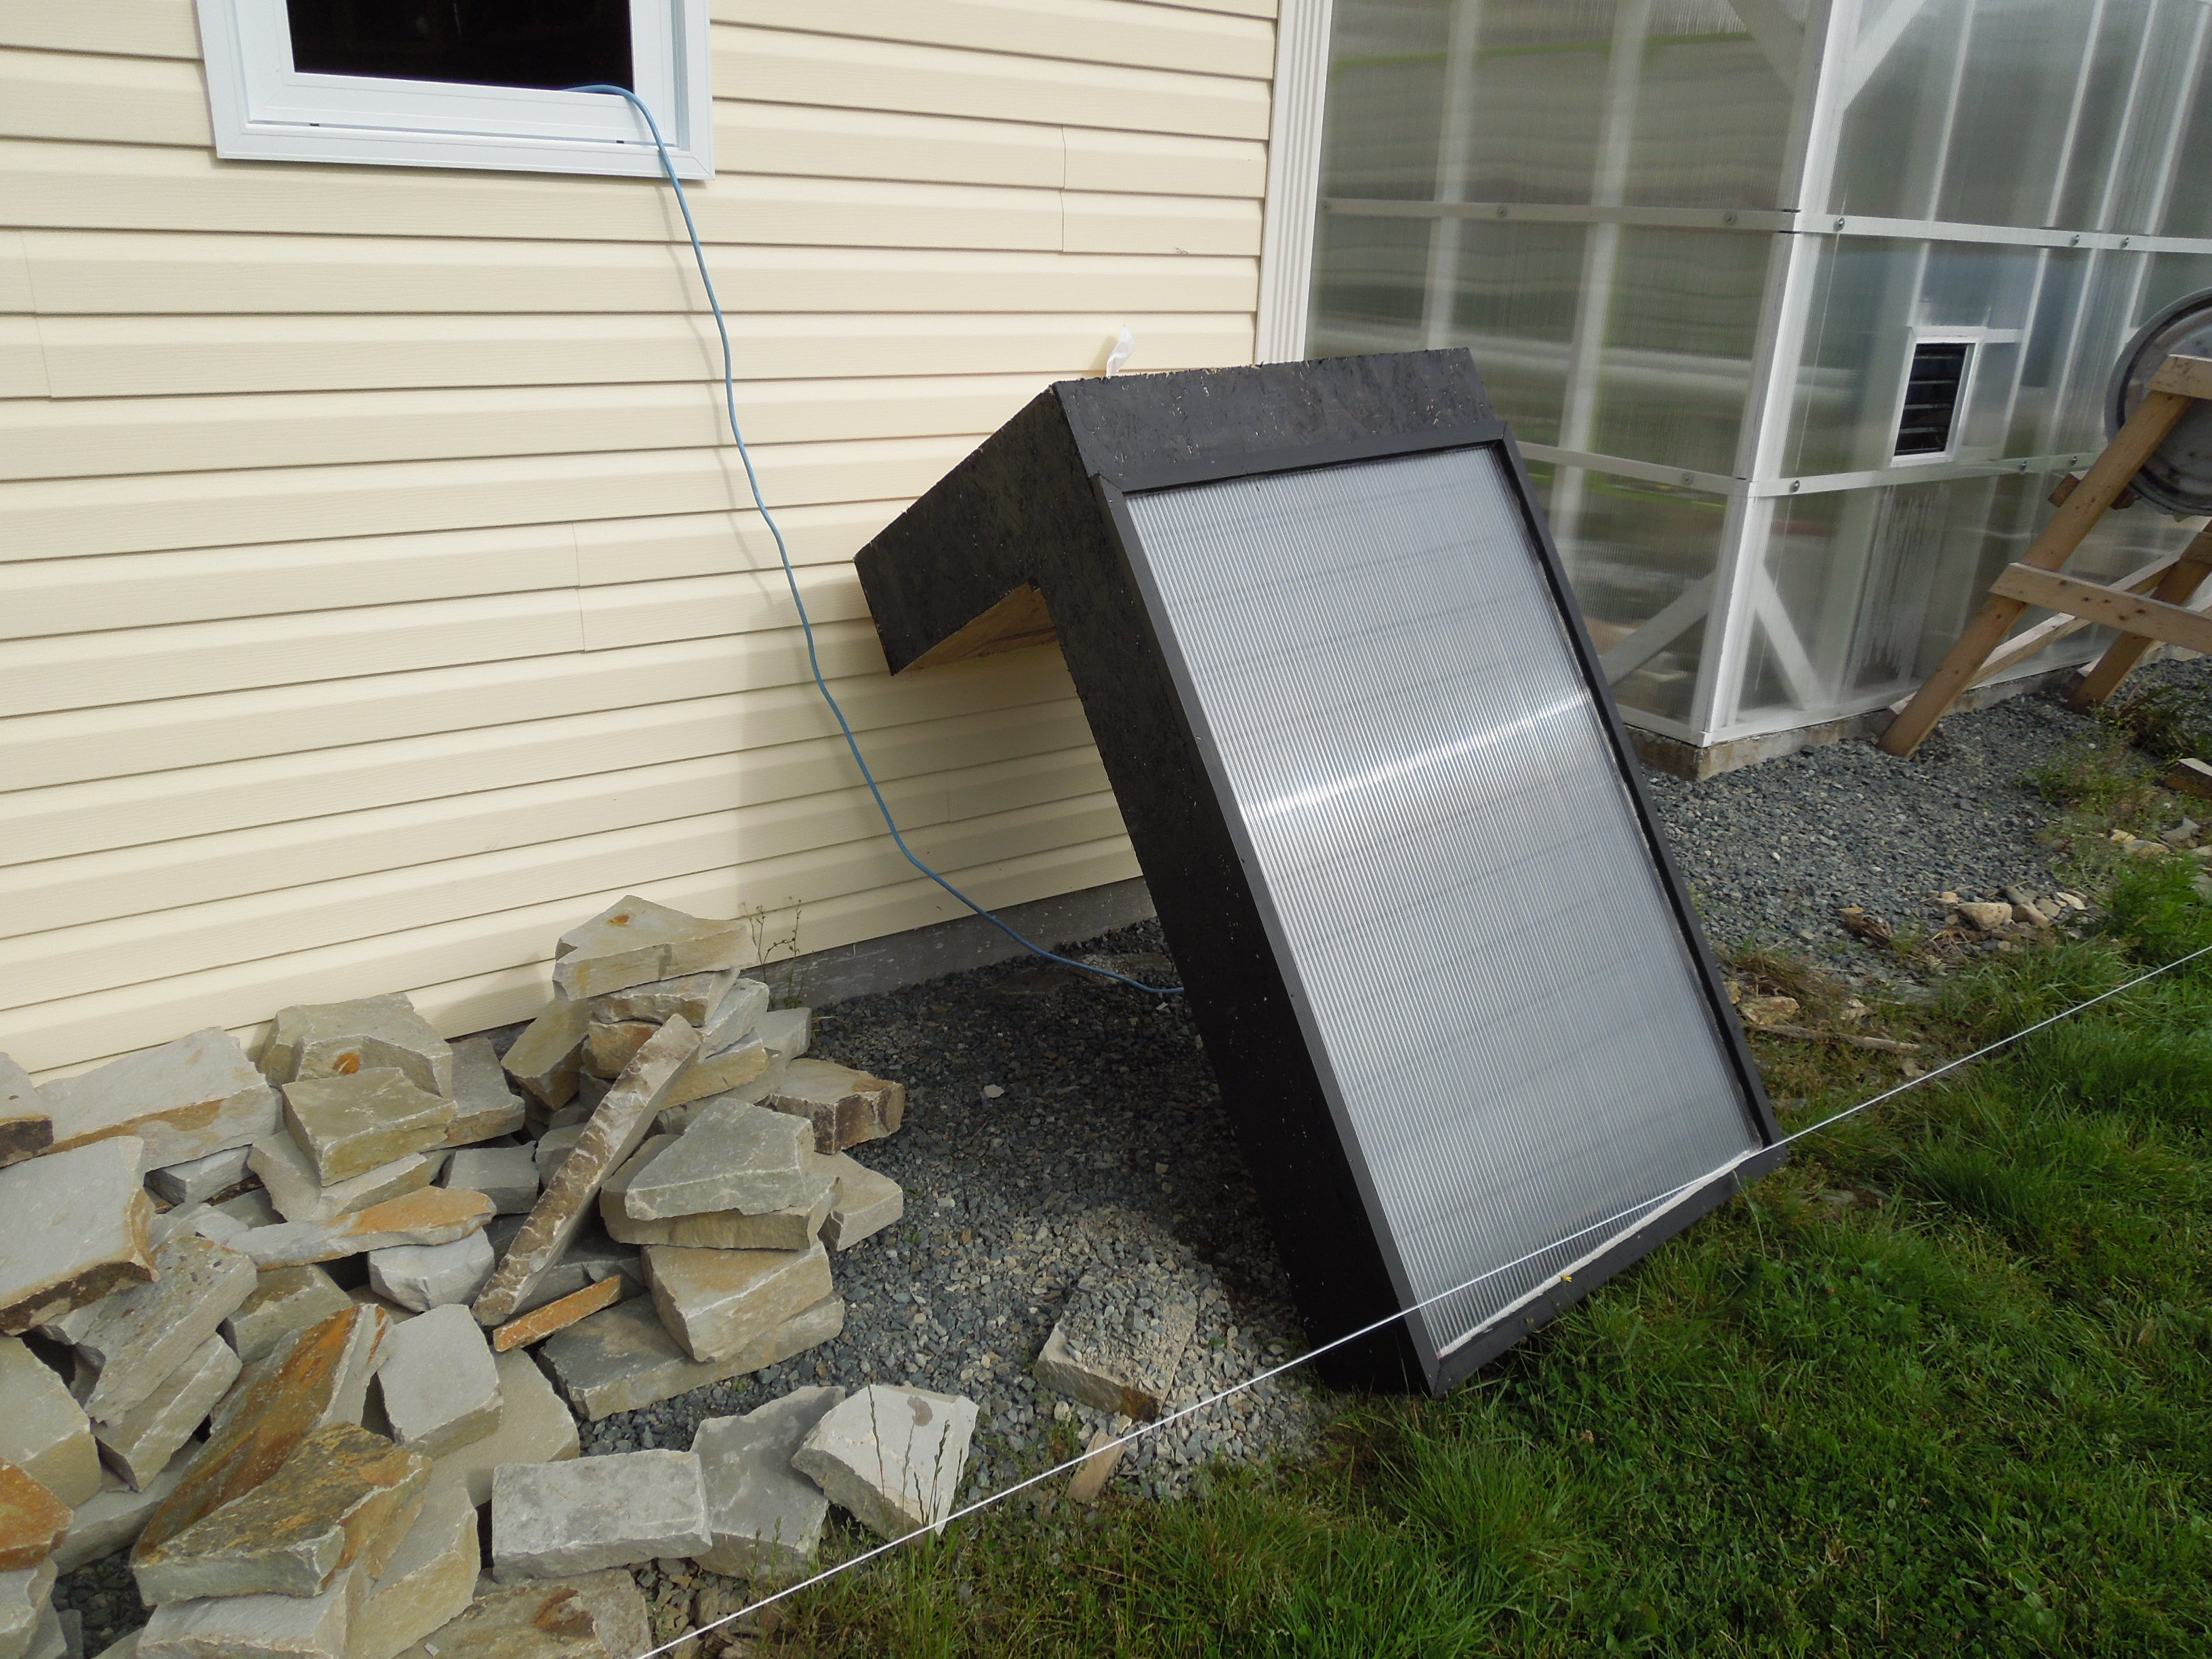 Window Mounted Solar Hot Air Furnace (Aluminum Soffit Based)